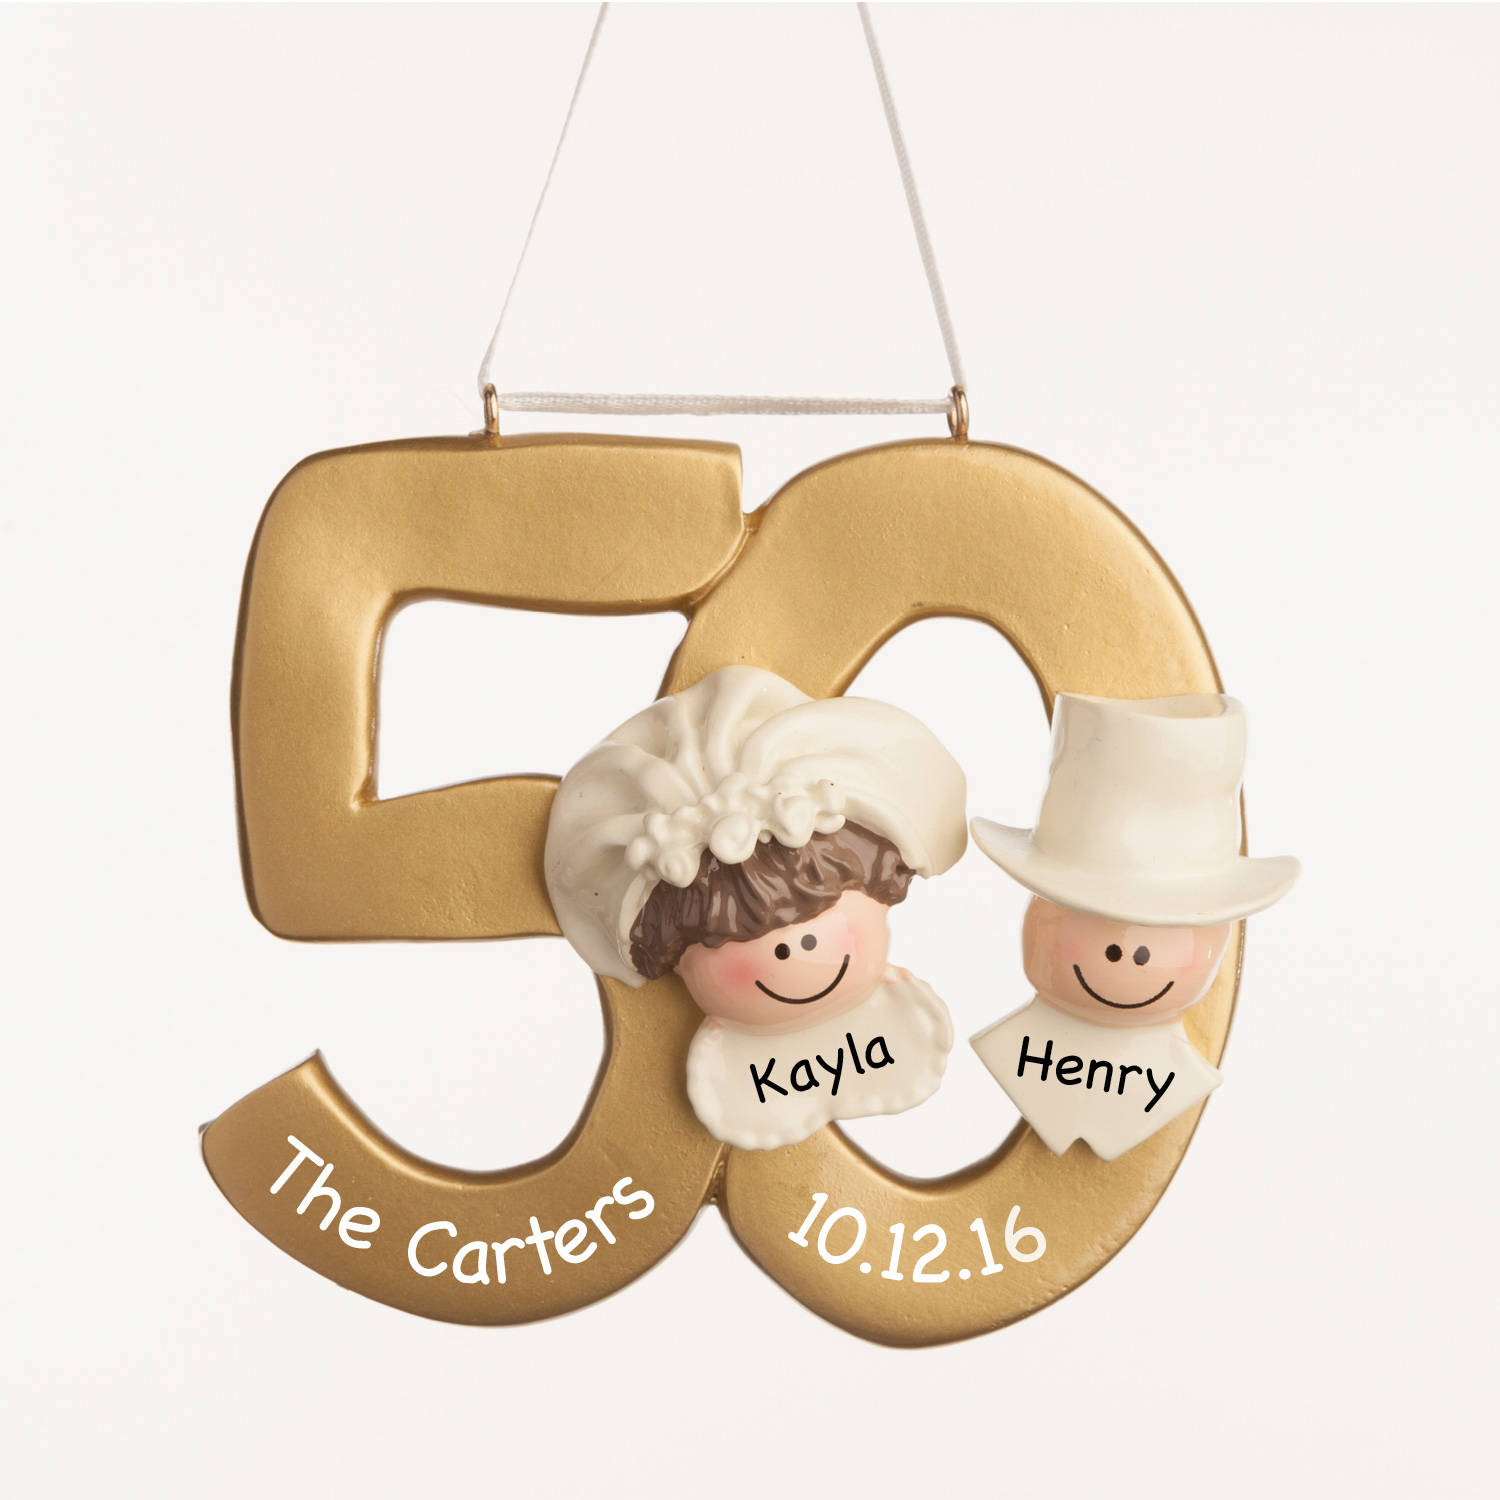 Personalized Christmas Ornament - 50th Anniversary